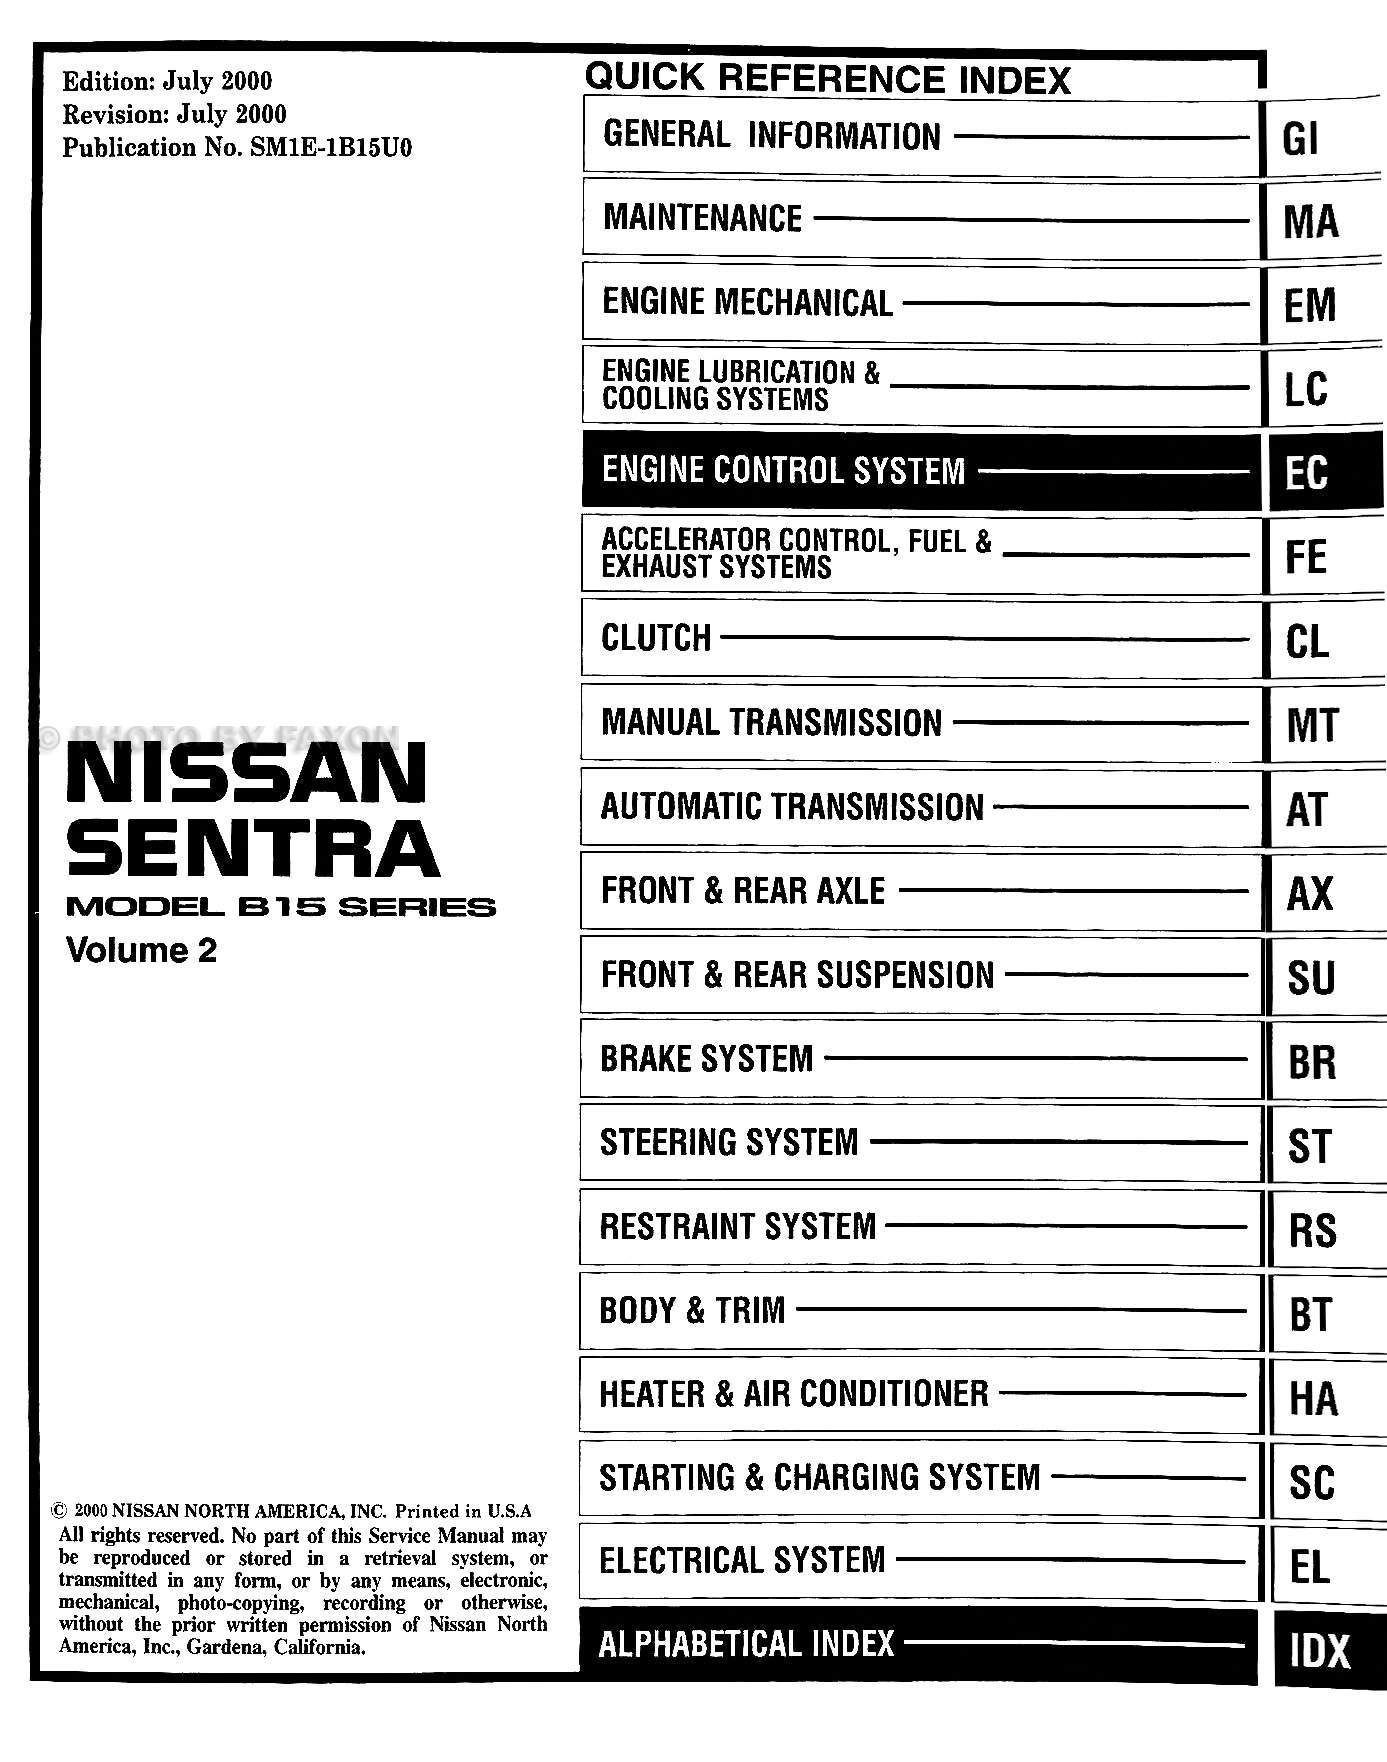 Fuse Panel Diagram For 1992 Nissan Sentra Wiring Library 1993 Chrysler New Yorker Schematic Another Blog About U2022 Electrical 2001